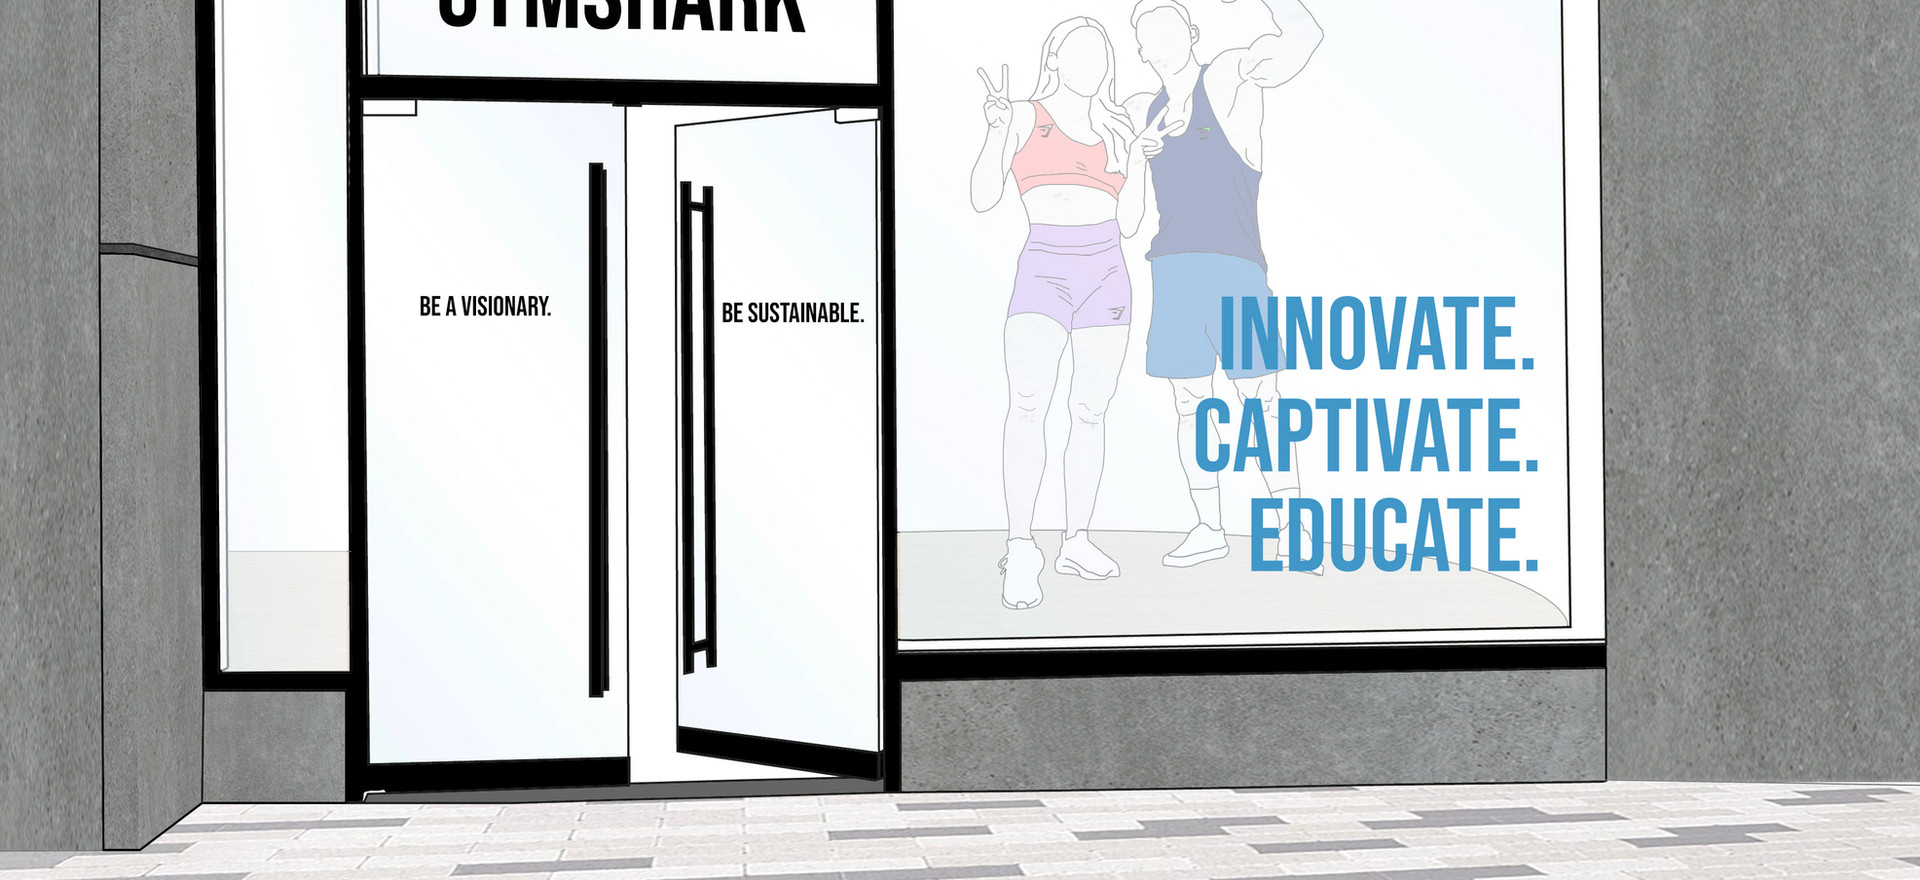 Window display for the brick-and-mortar experience. Reflecting the mission: Innovate, Captivate, Educate.